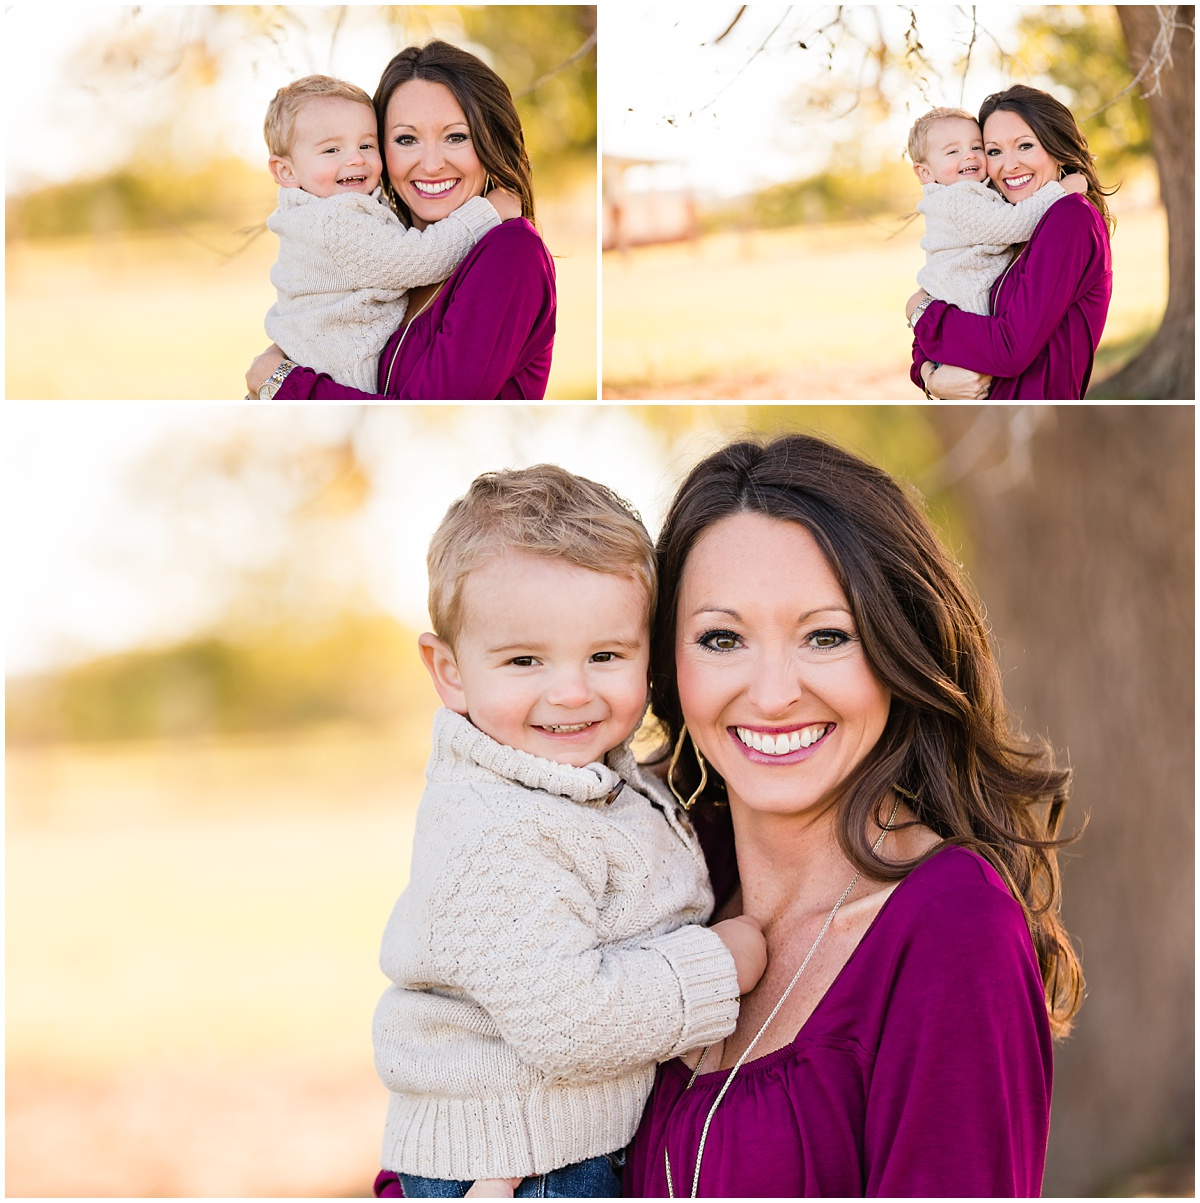 Family-Children-Maternity-Portraits-San-Antonio-Hill-Country-Texas-Carly-Barton-Photography_0060.jpg